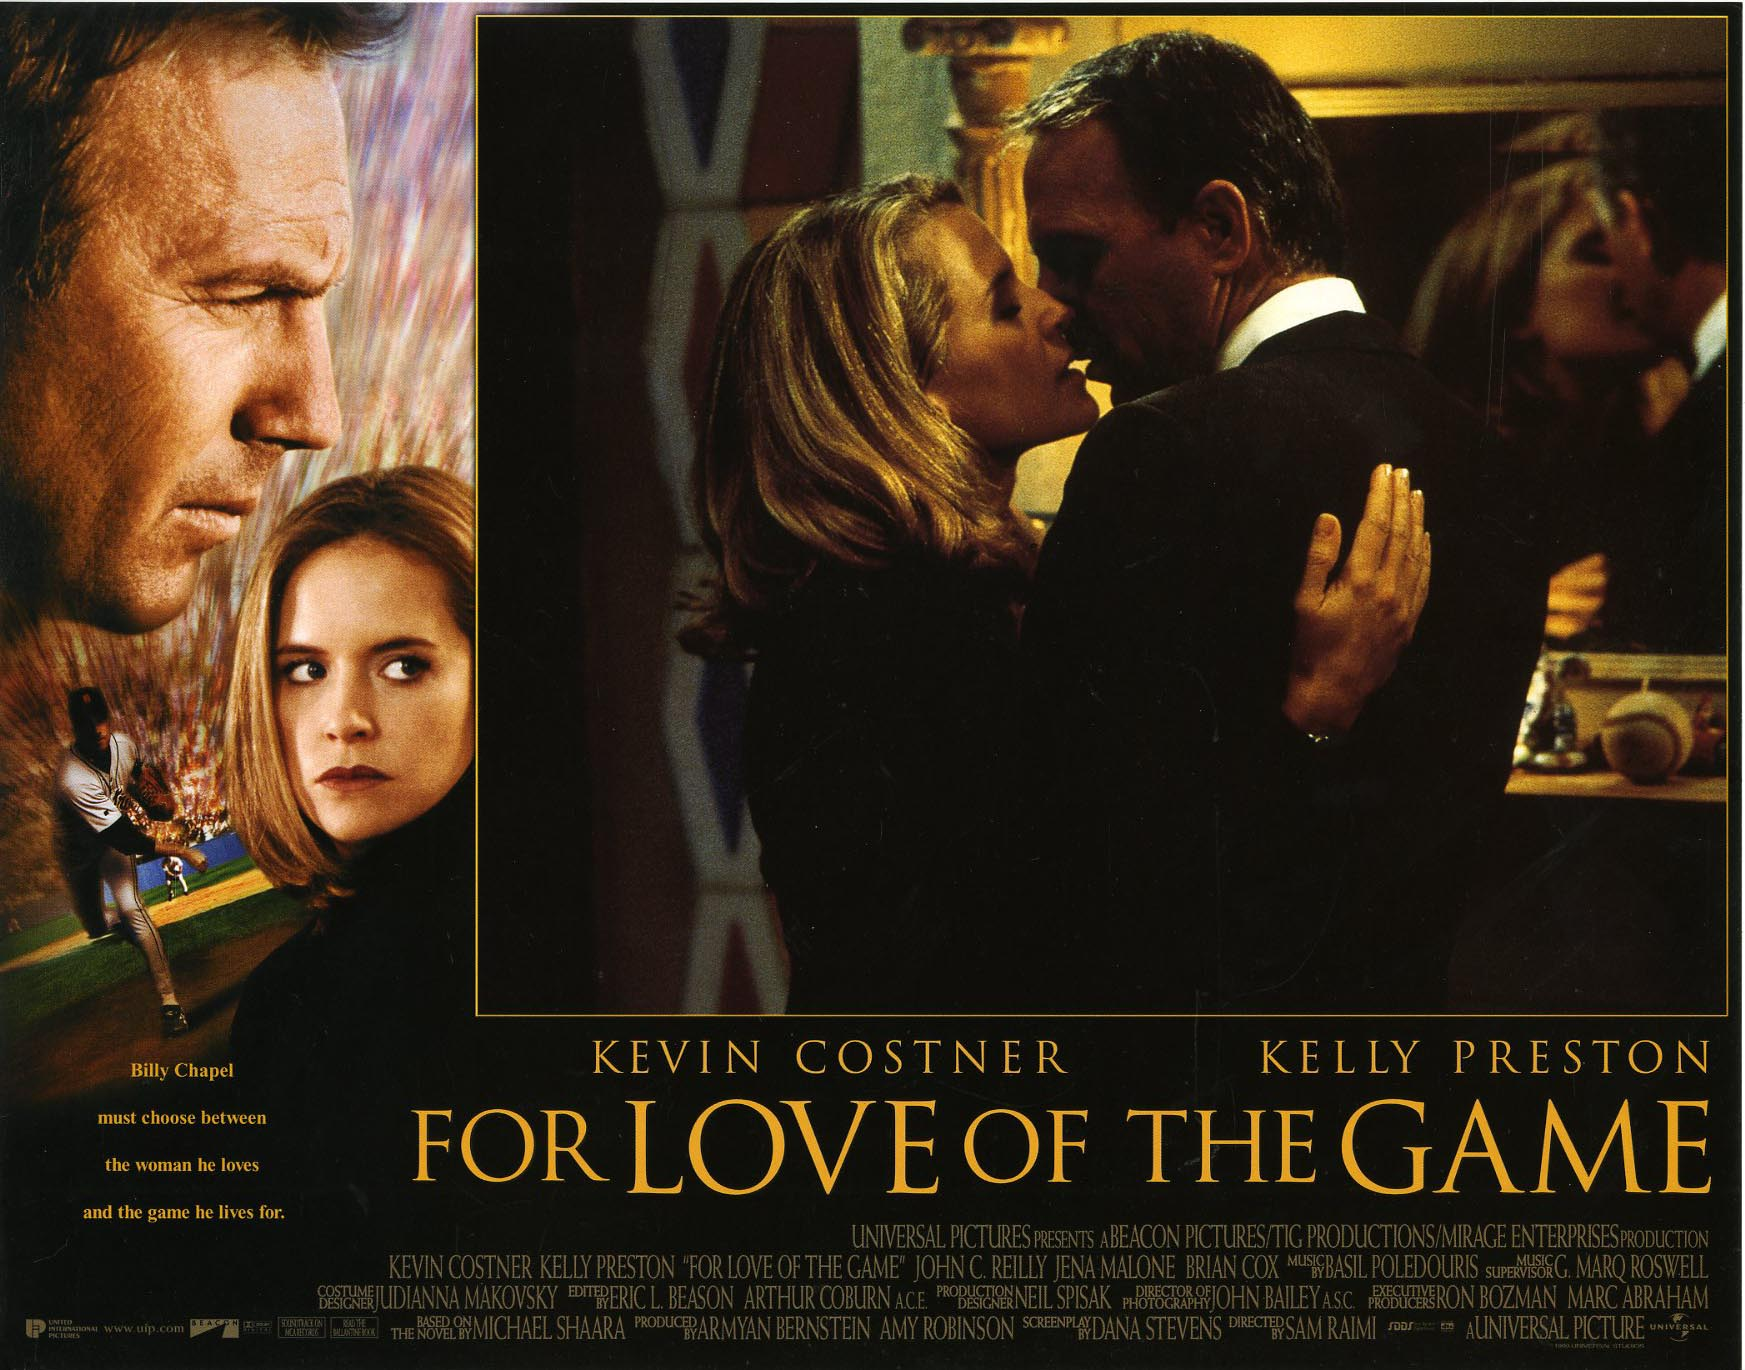 a review of the 1999 movie for the love of the game The movie has a screenplay that lumbers between past and present like regret on a death march billy suits up for his final game of the season, and as he starts pitching we get the five years earlier card, and the movie cuts back and forth between his quest to pitch a perfect game and his memories of their love affair.